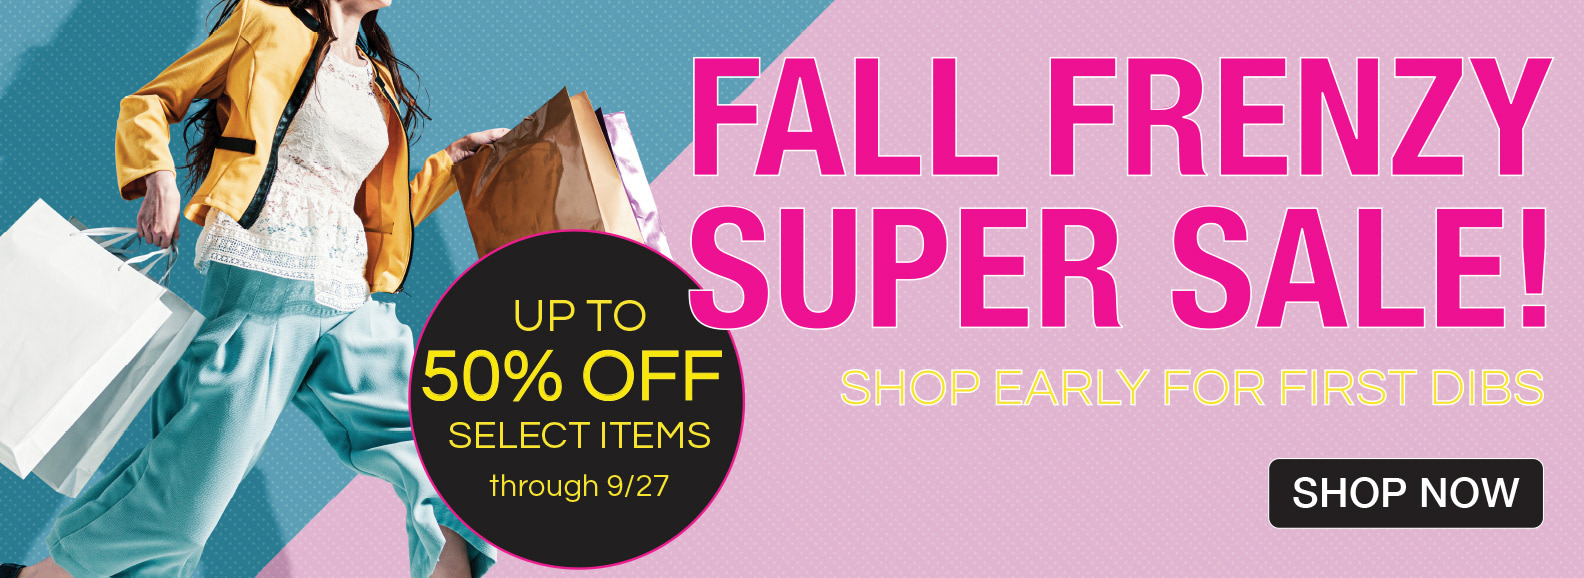 Fall Frenzy Super Sale Up To 50% Off Select Items